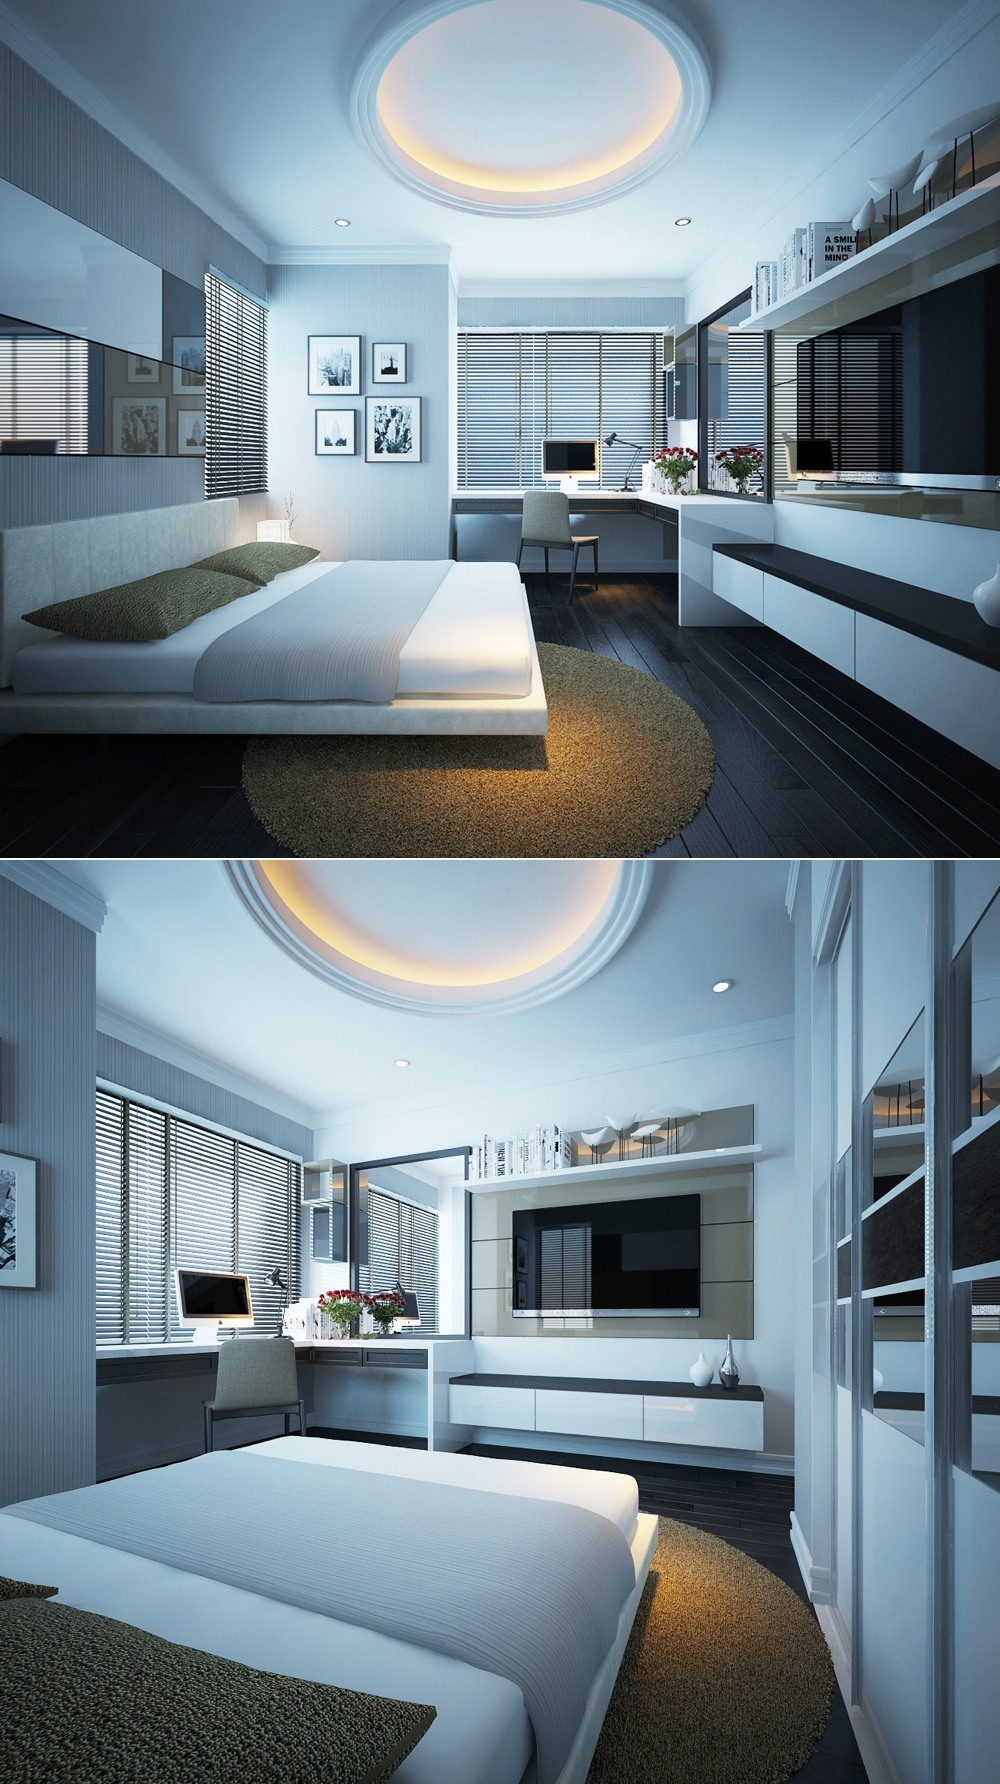 10 eye catching modern bedroom decoration ideas modern for Luxury modern bedroom